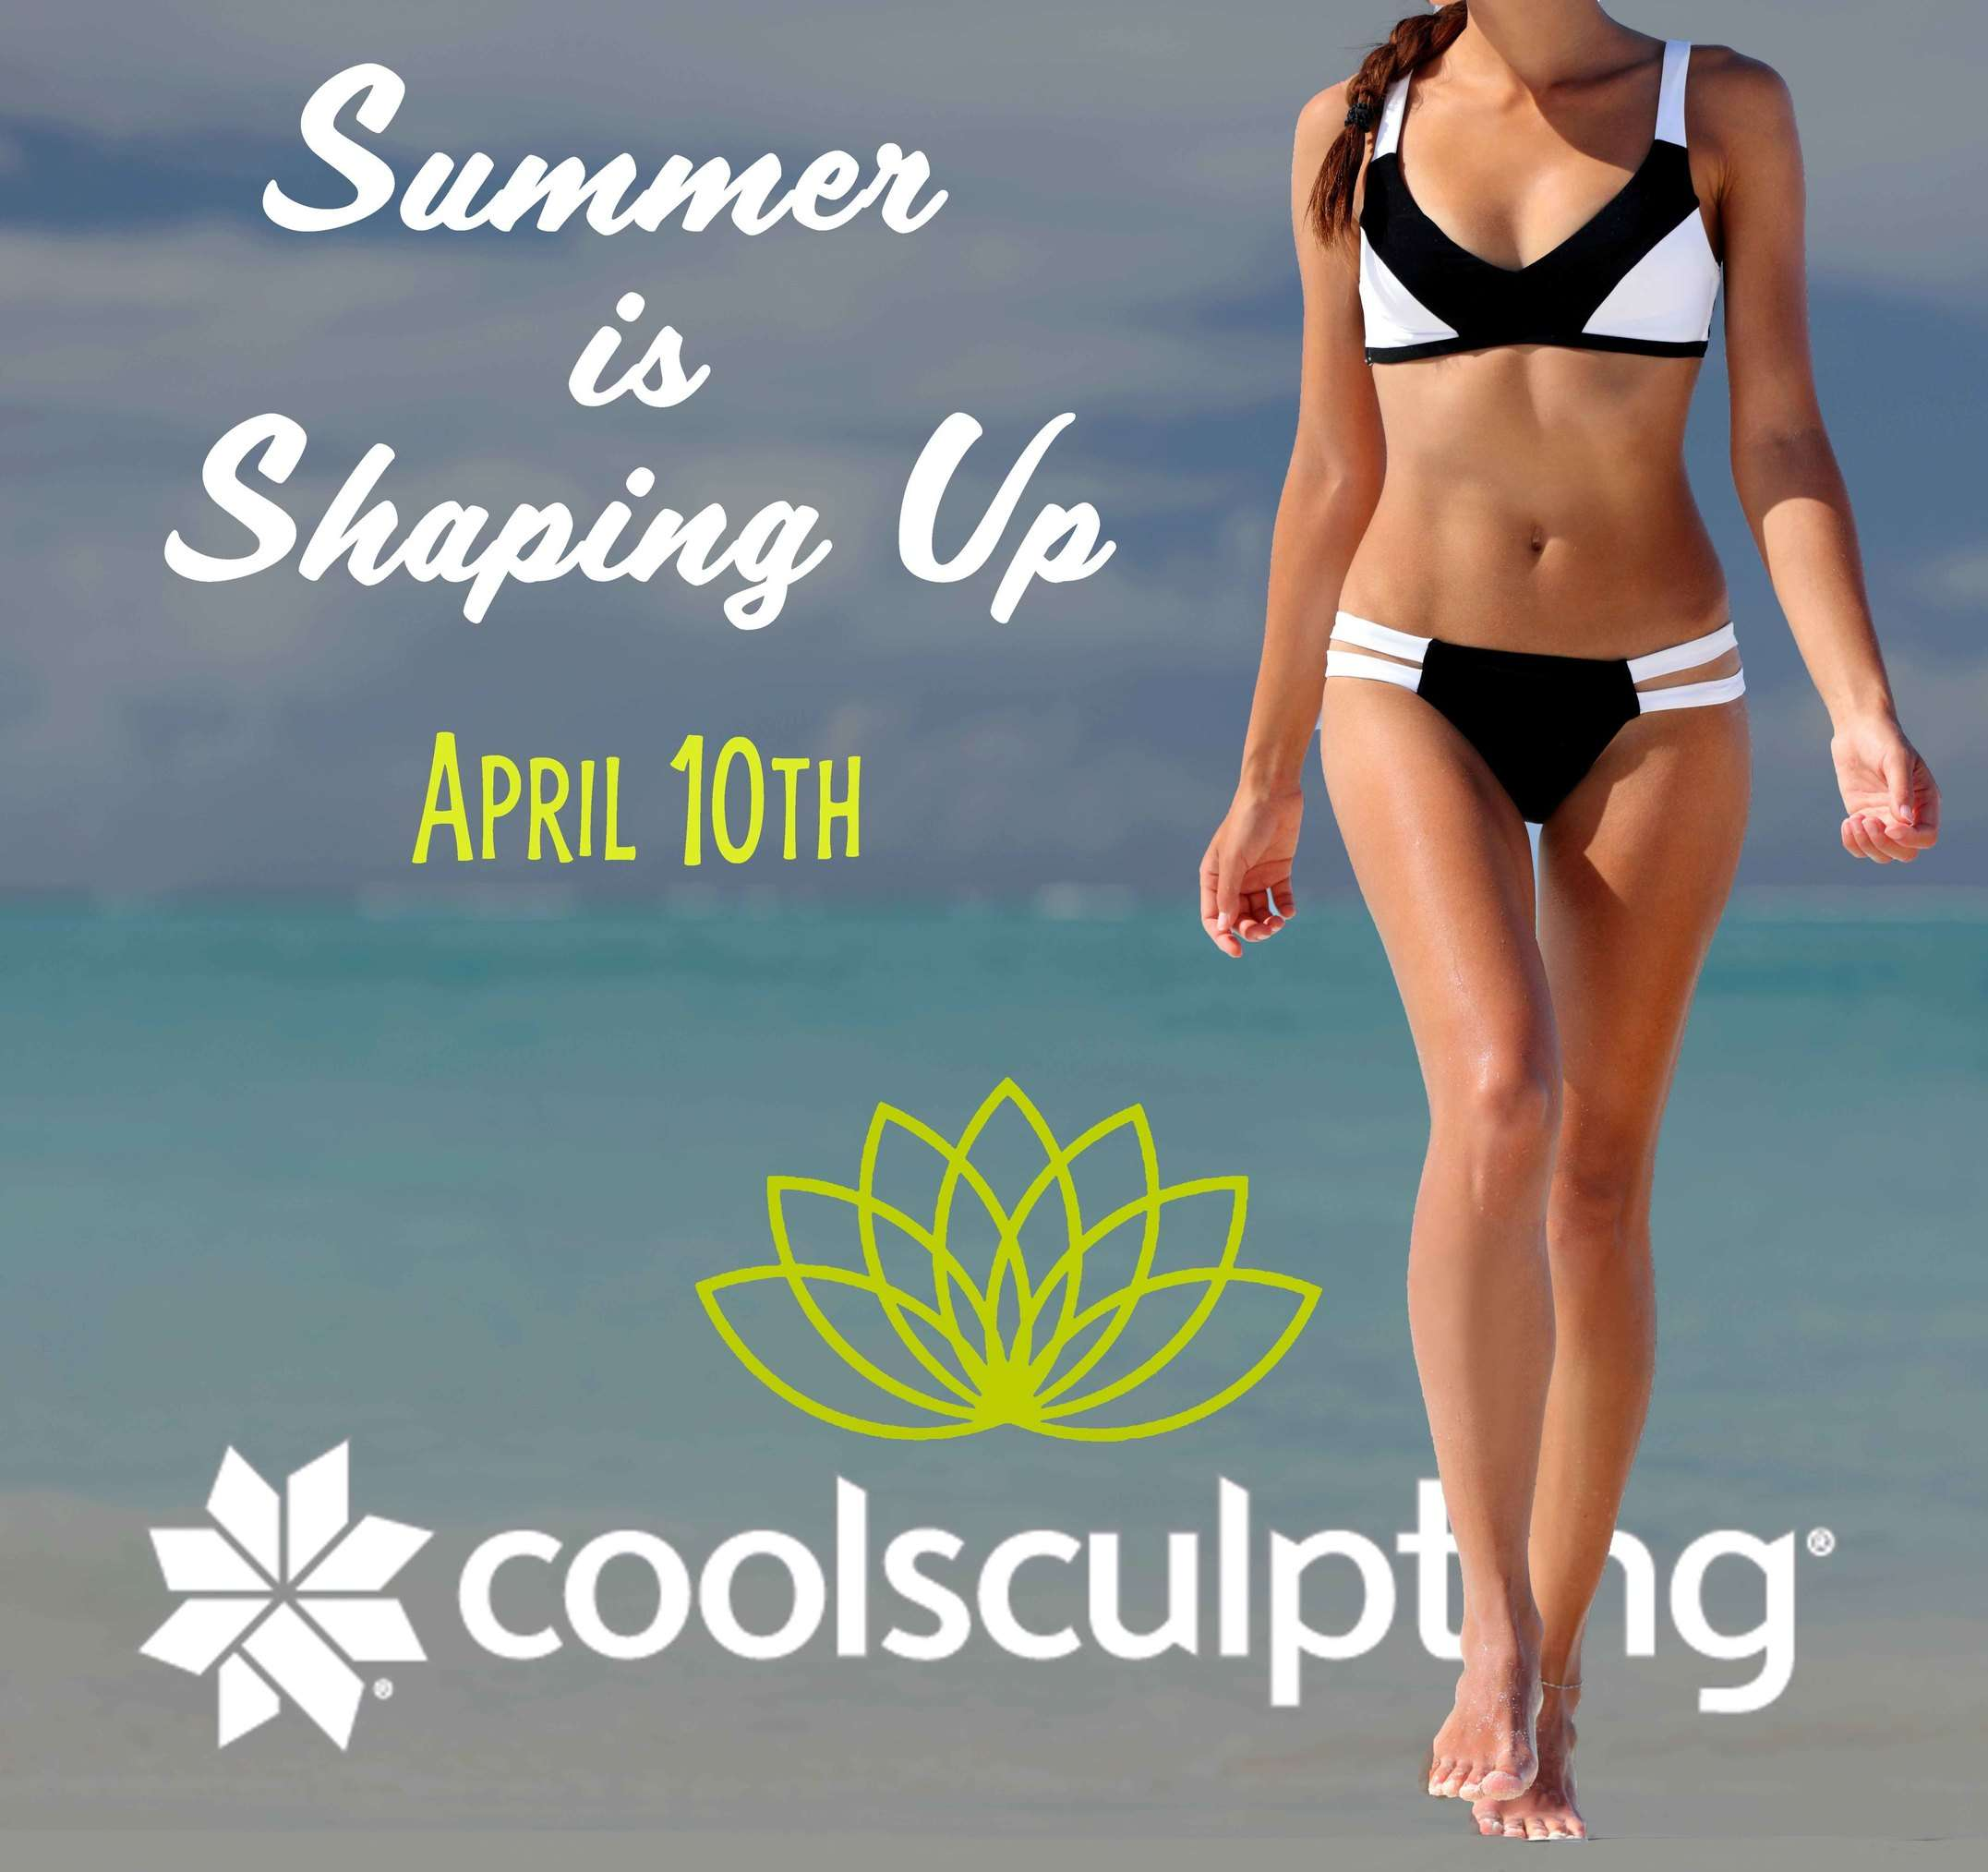 Idaho Falls Office Coolsculpting Event